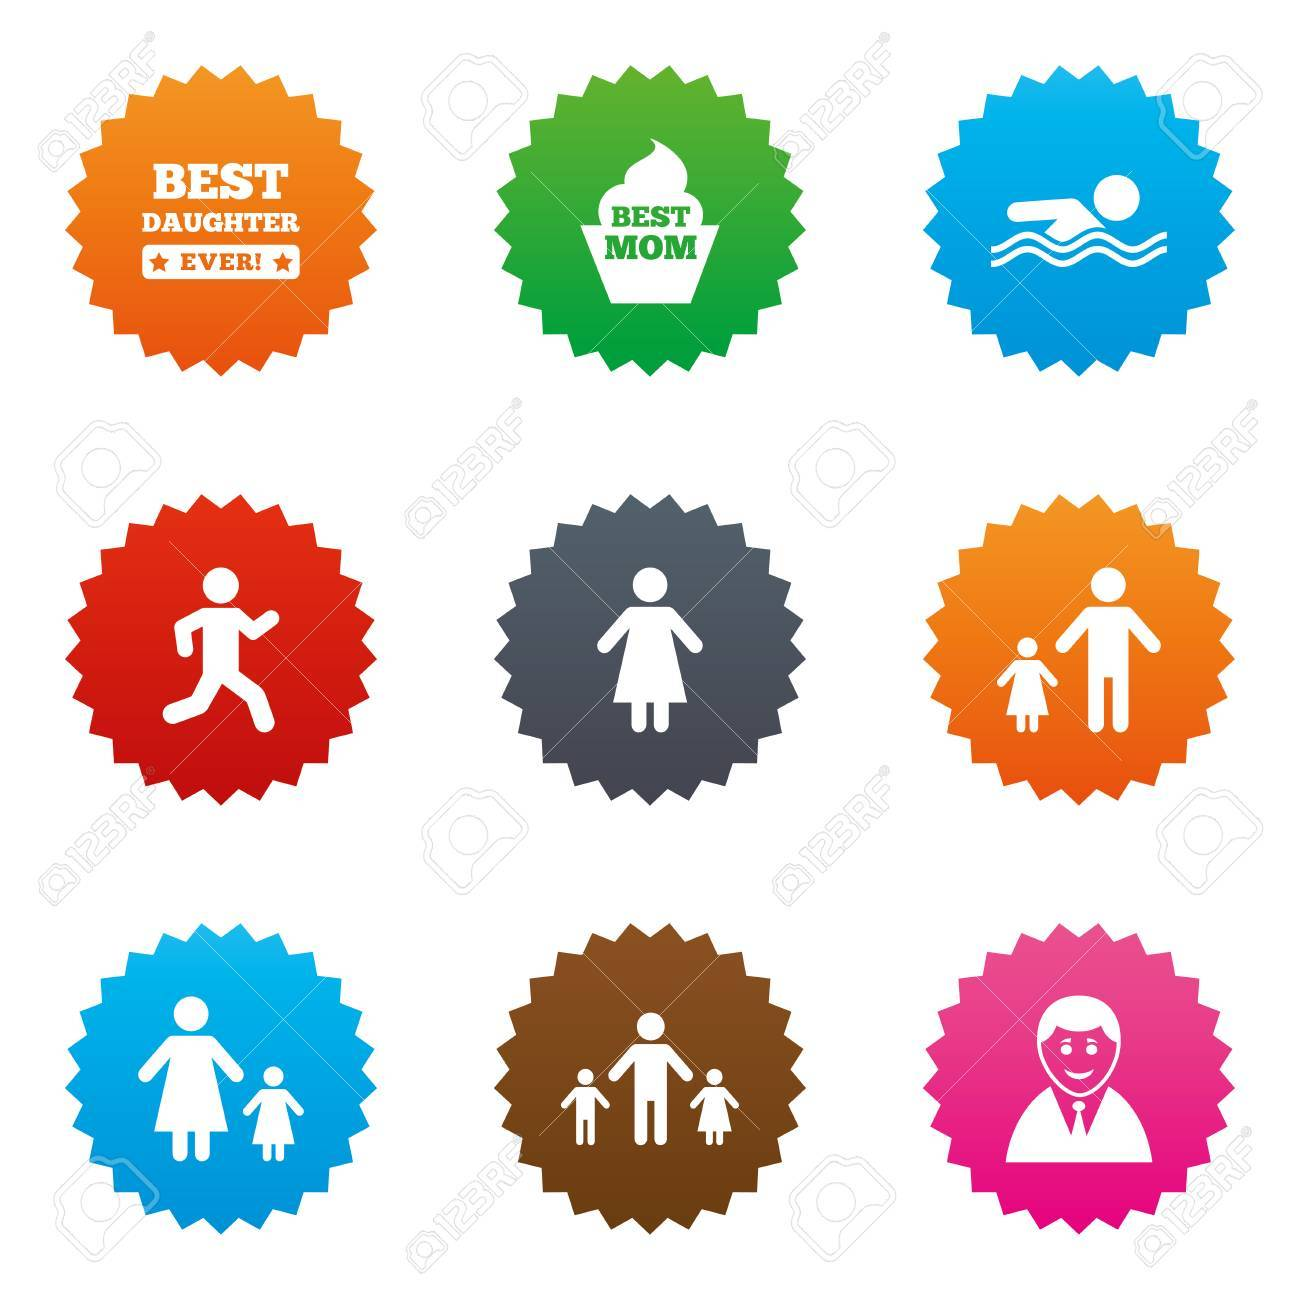 People Family Icons Swimming Pool Person Signs Best Mom